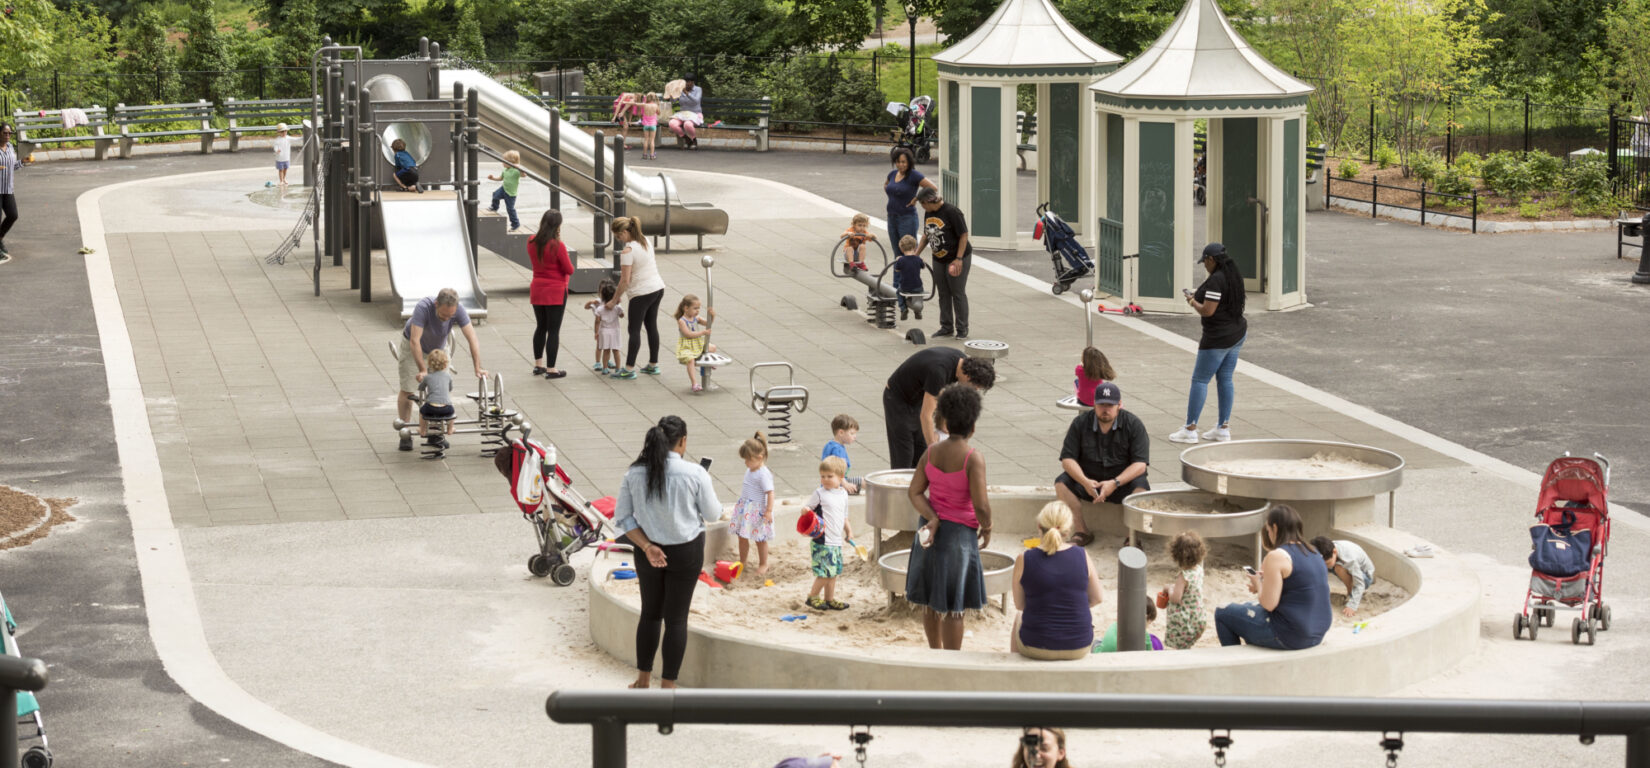 Children and guardians enjoying the playground in summer